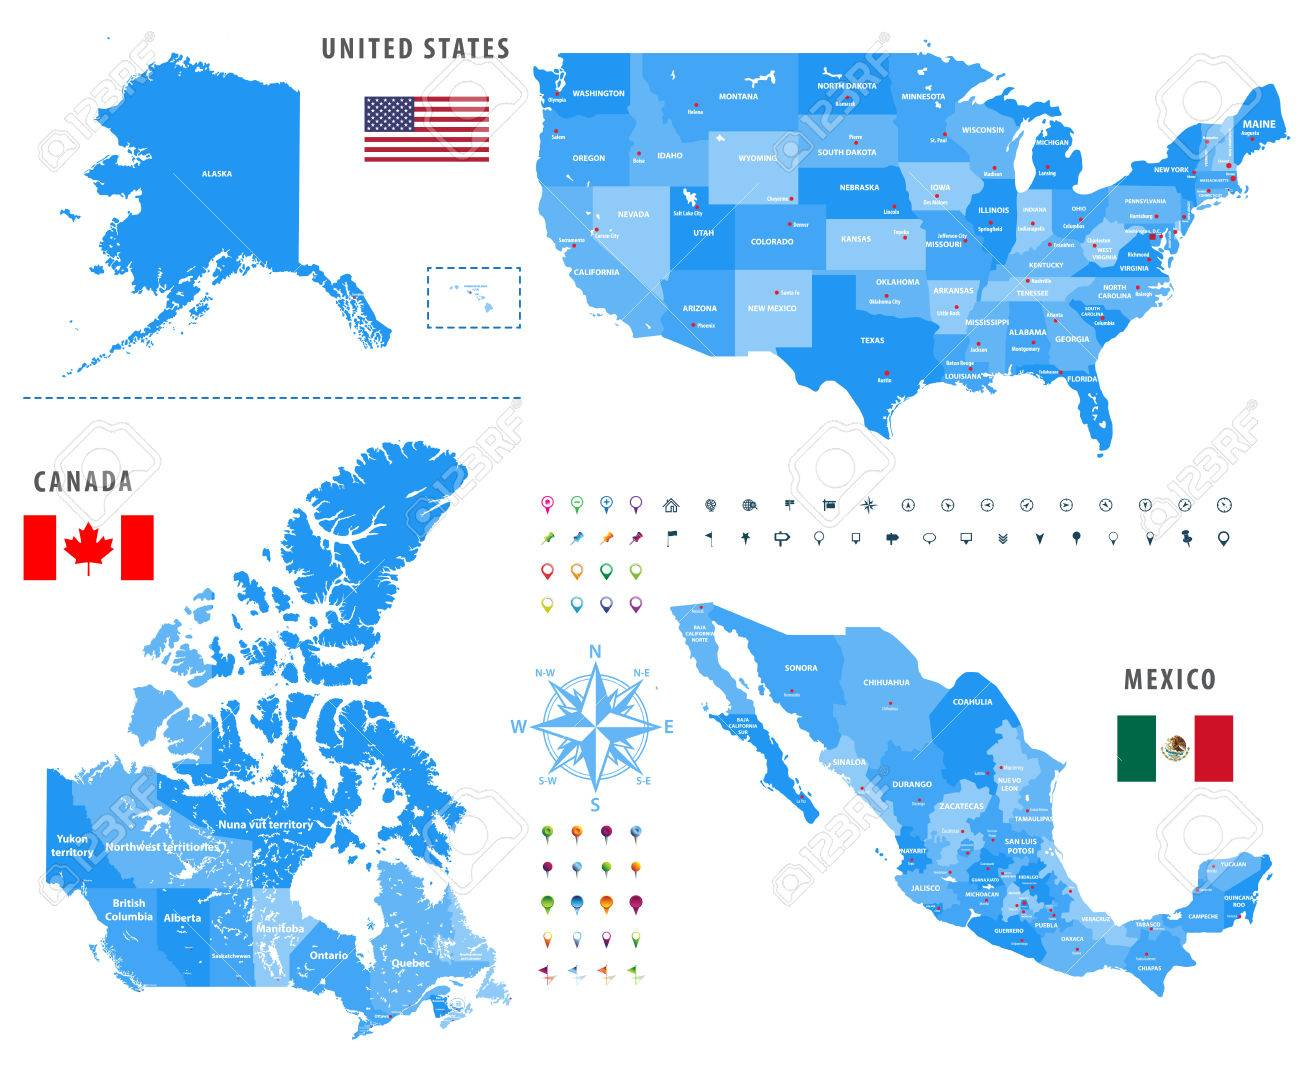 Maps Of Canada, United States And Mexico With Flags And Location ...